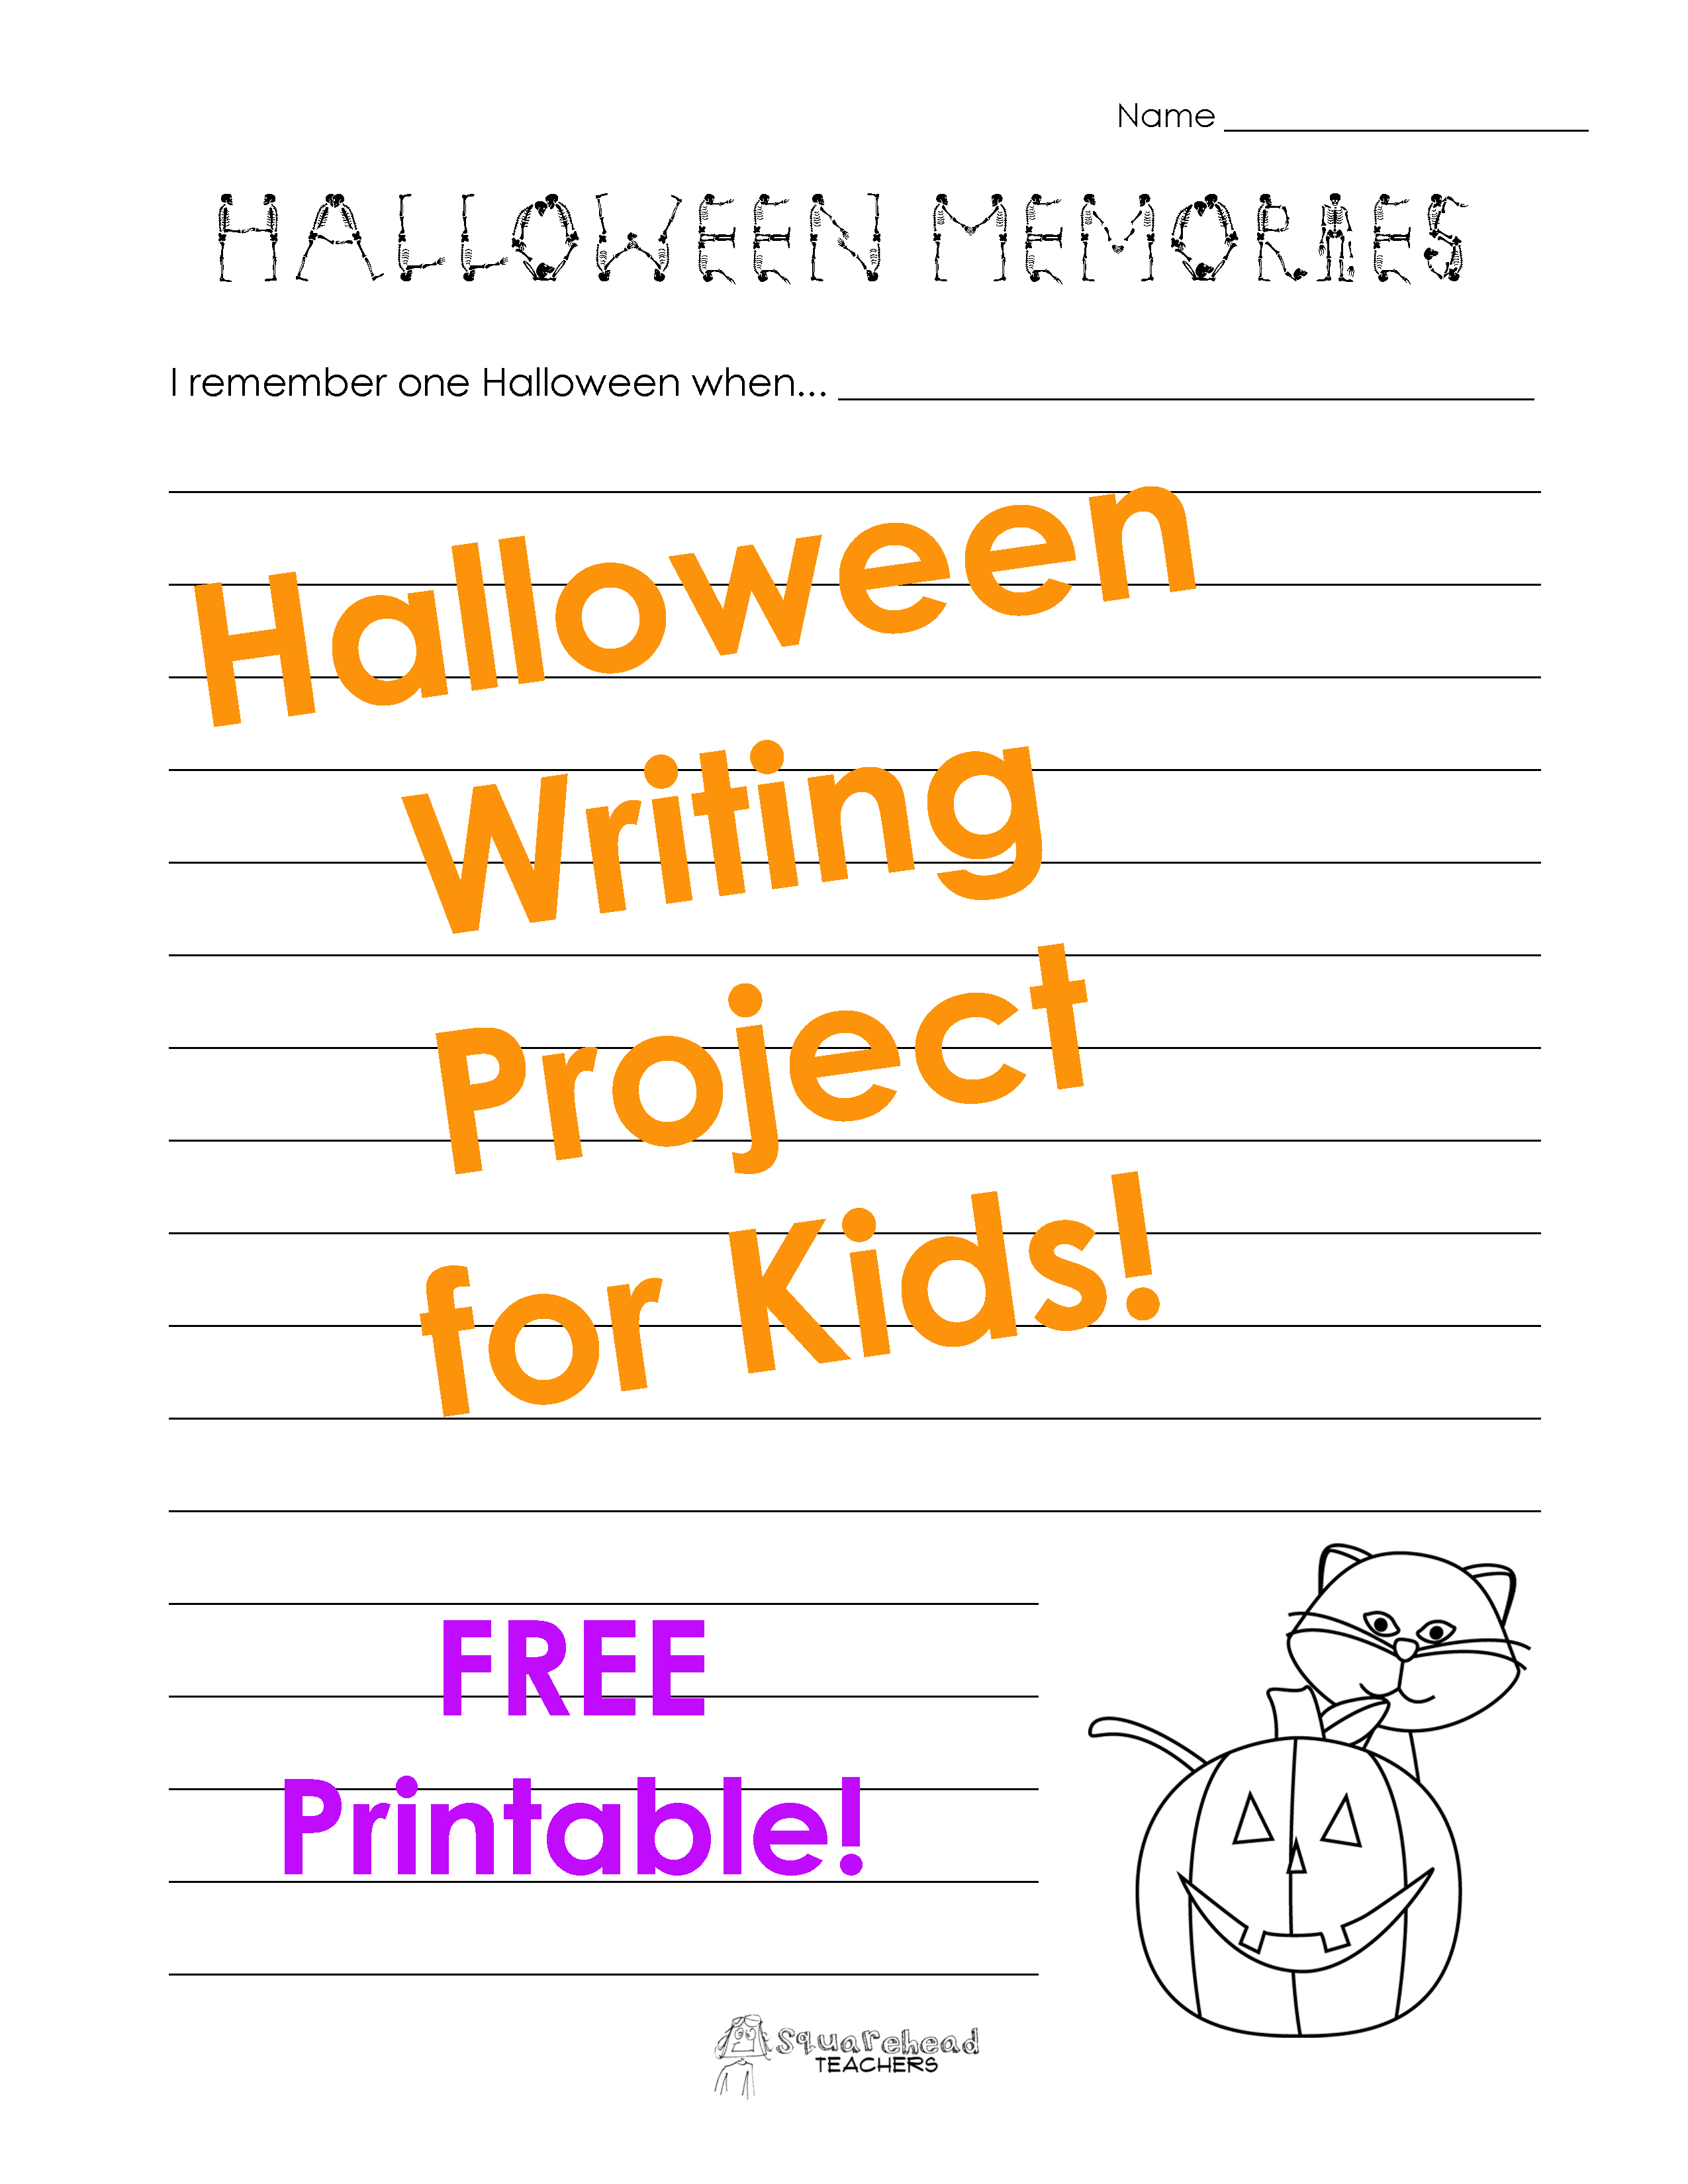 Writing Prompts | Squarehead Teachers - Free Printable Writing Prompts For Middle School